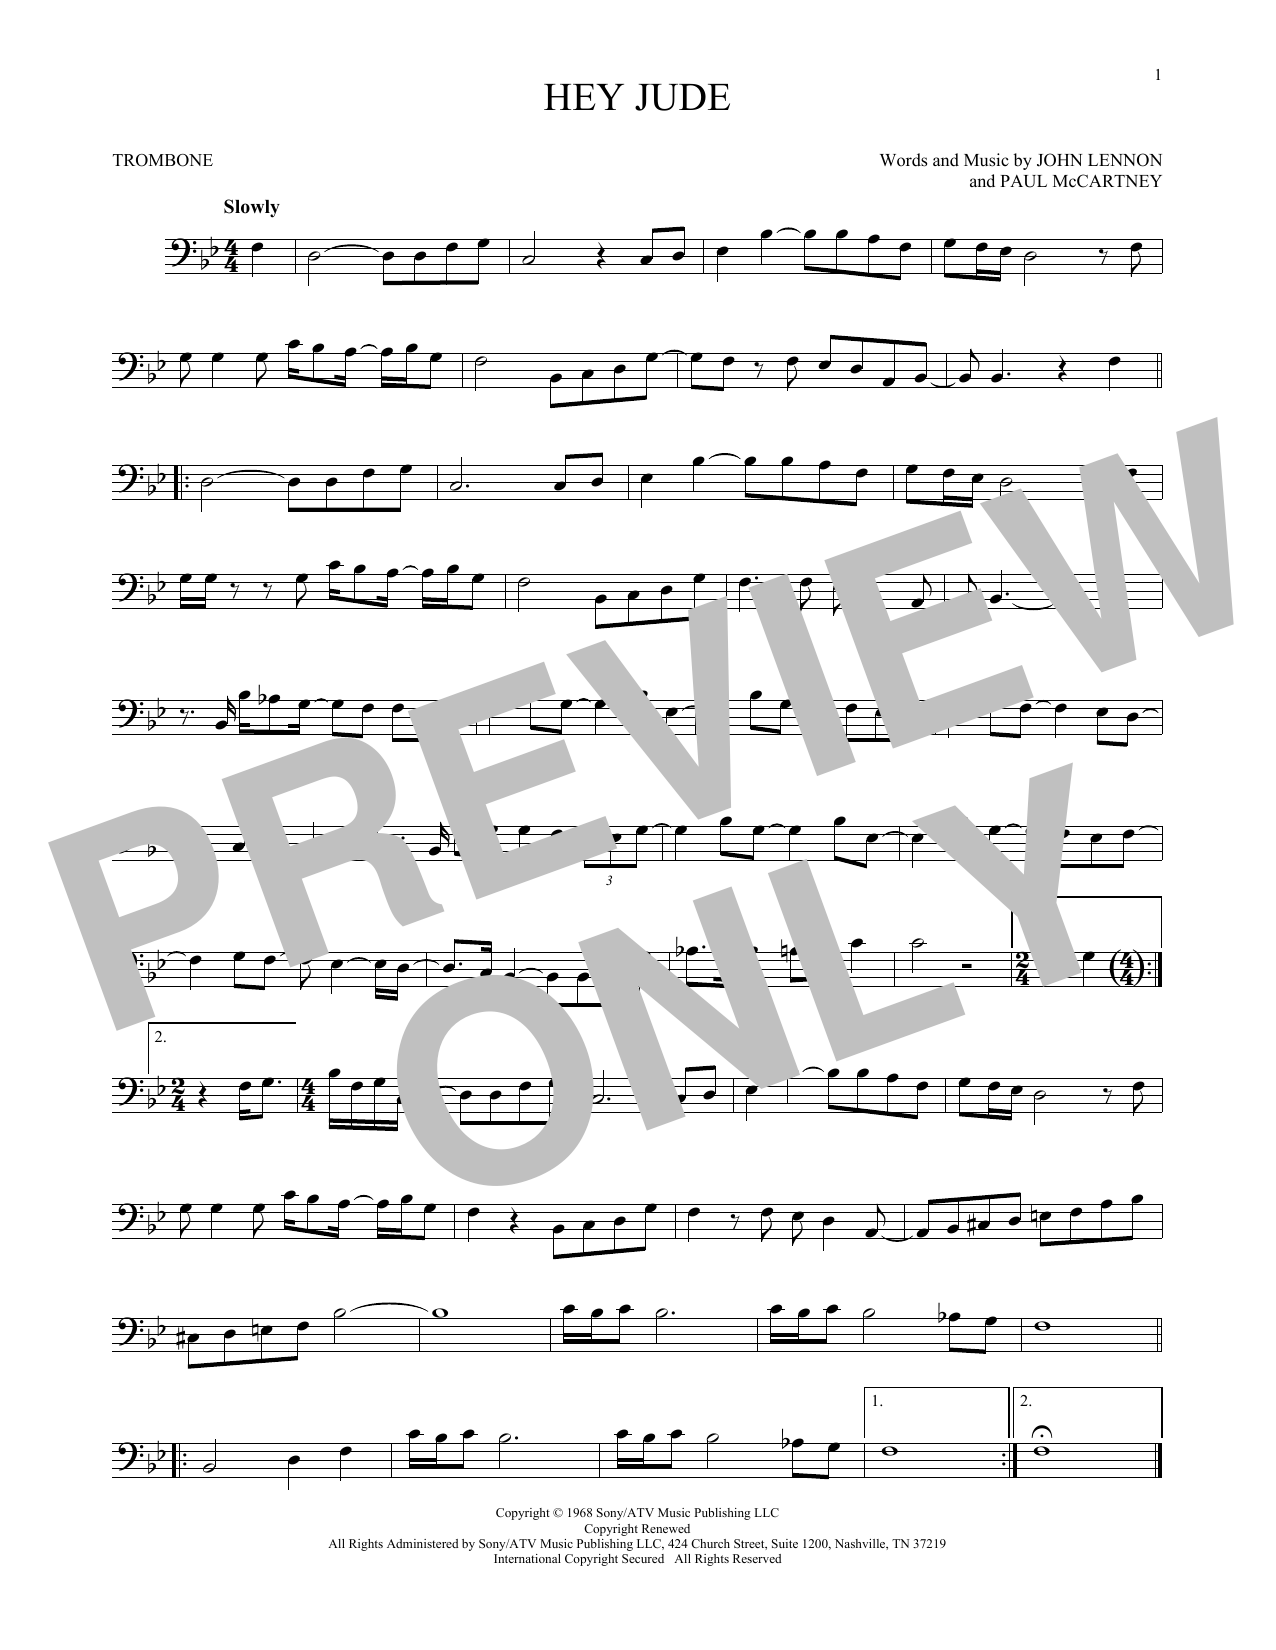 The Beatles 'Hey Jude' Sheet Music Notes, Chords | Download Printable  Trombone Solo - SKU: 171048